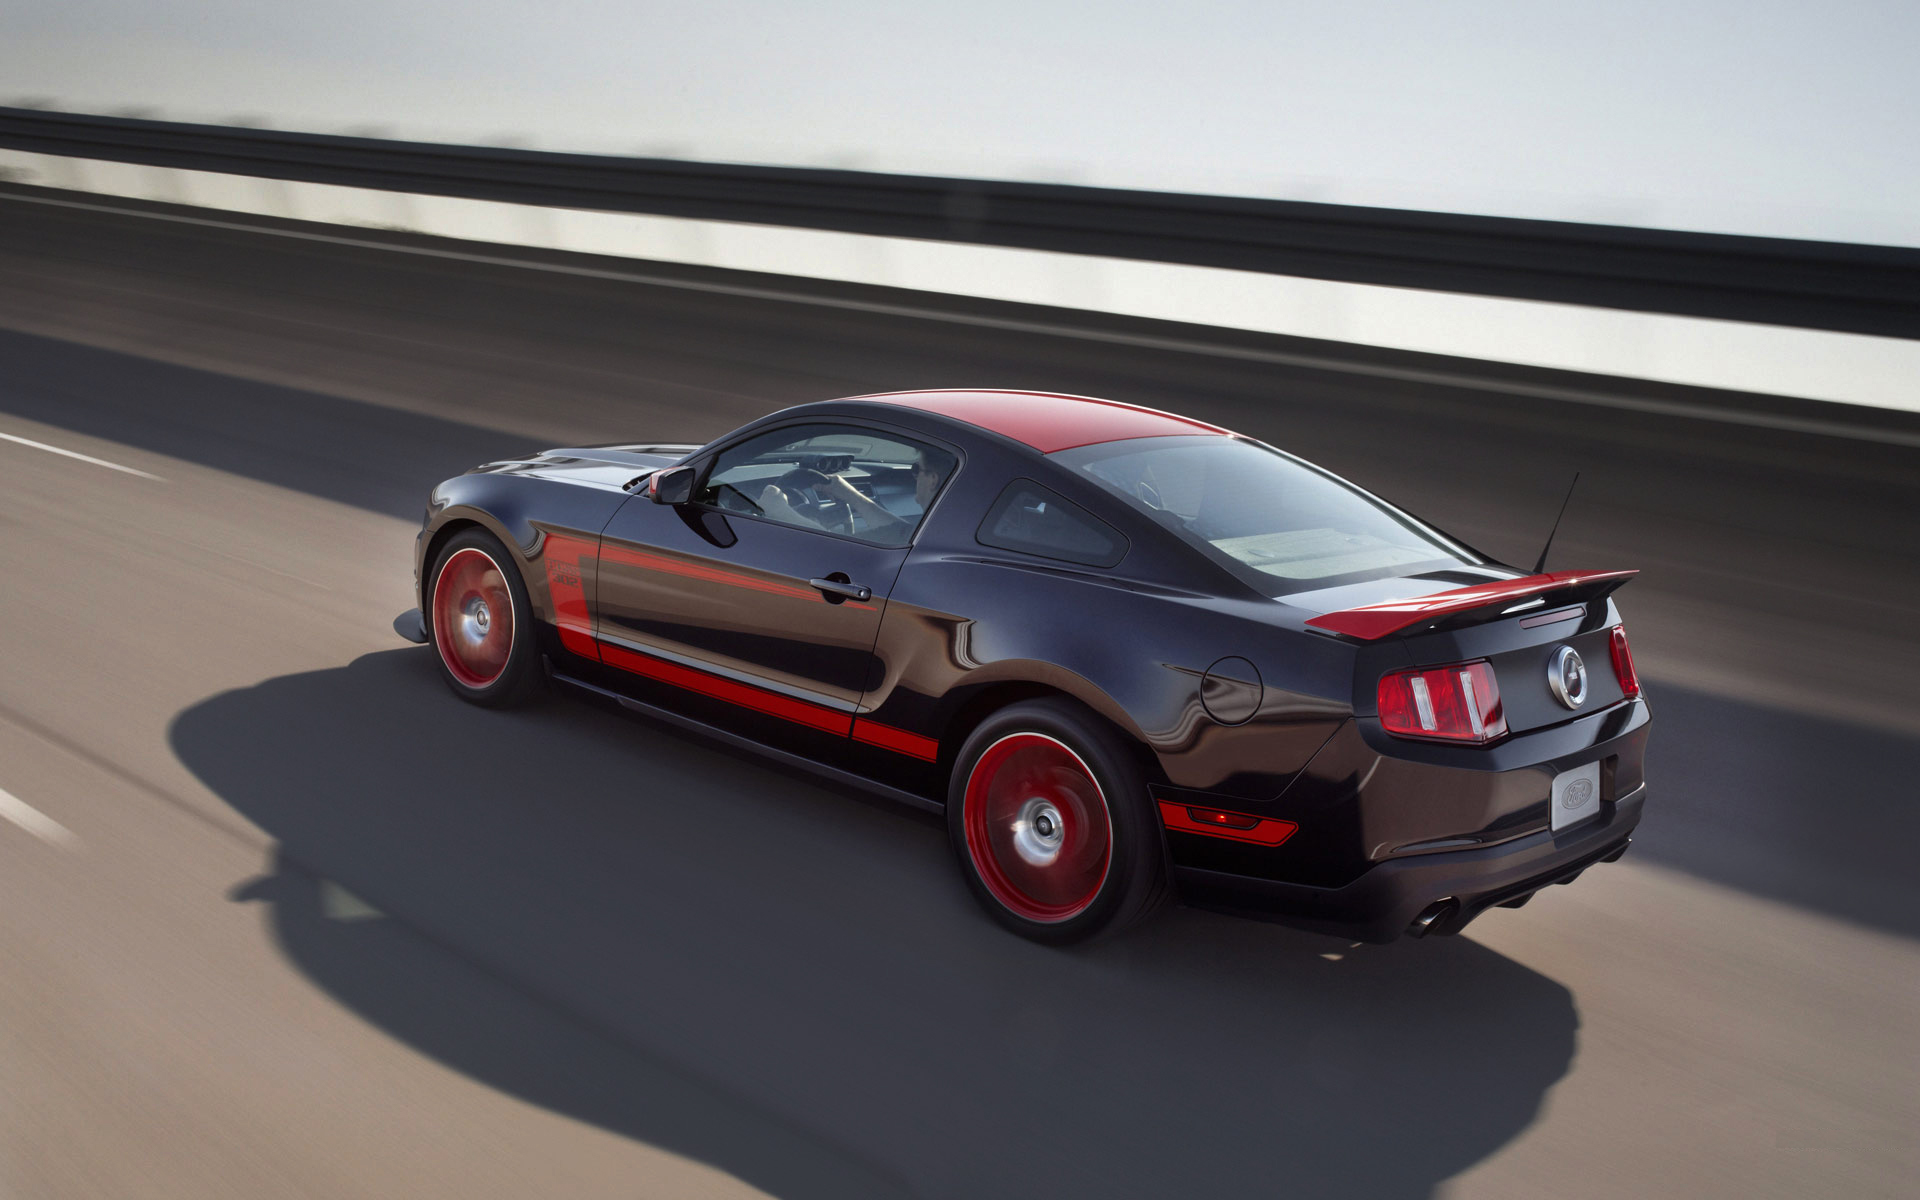 Vehicles - Ford Mustang  - Amazing - Cool - Mustang - Vehicle - Car - Boss Wallpaper